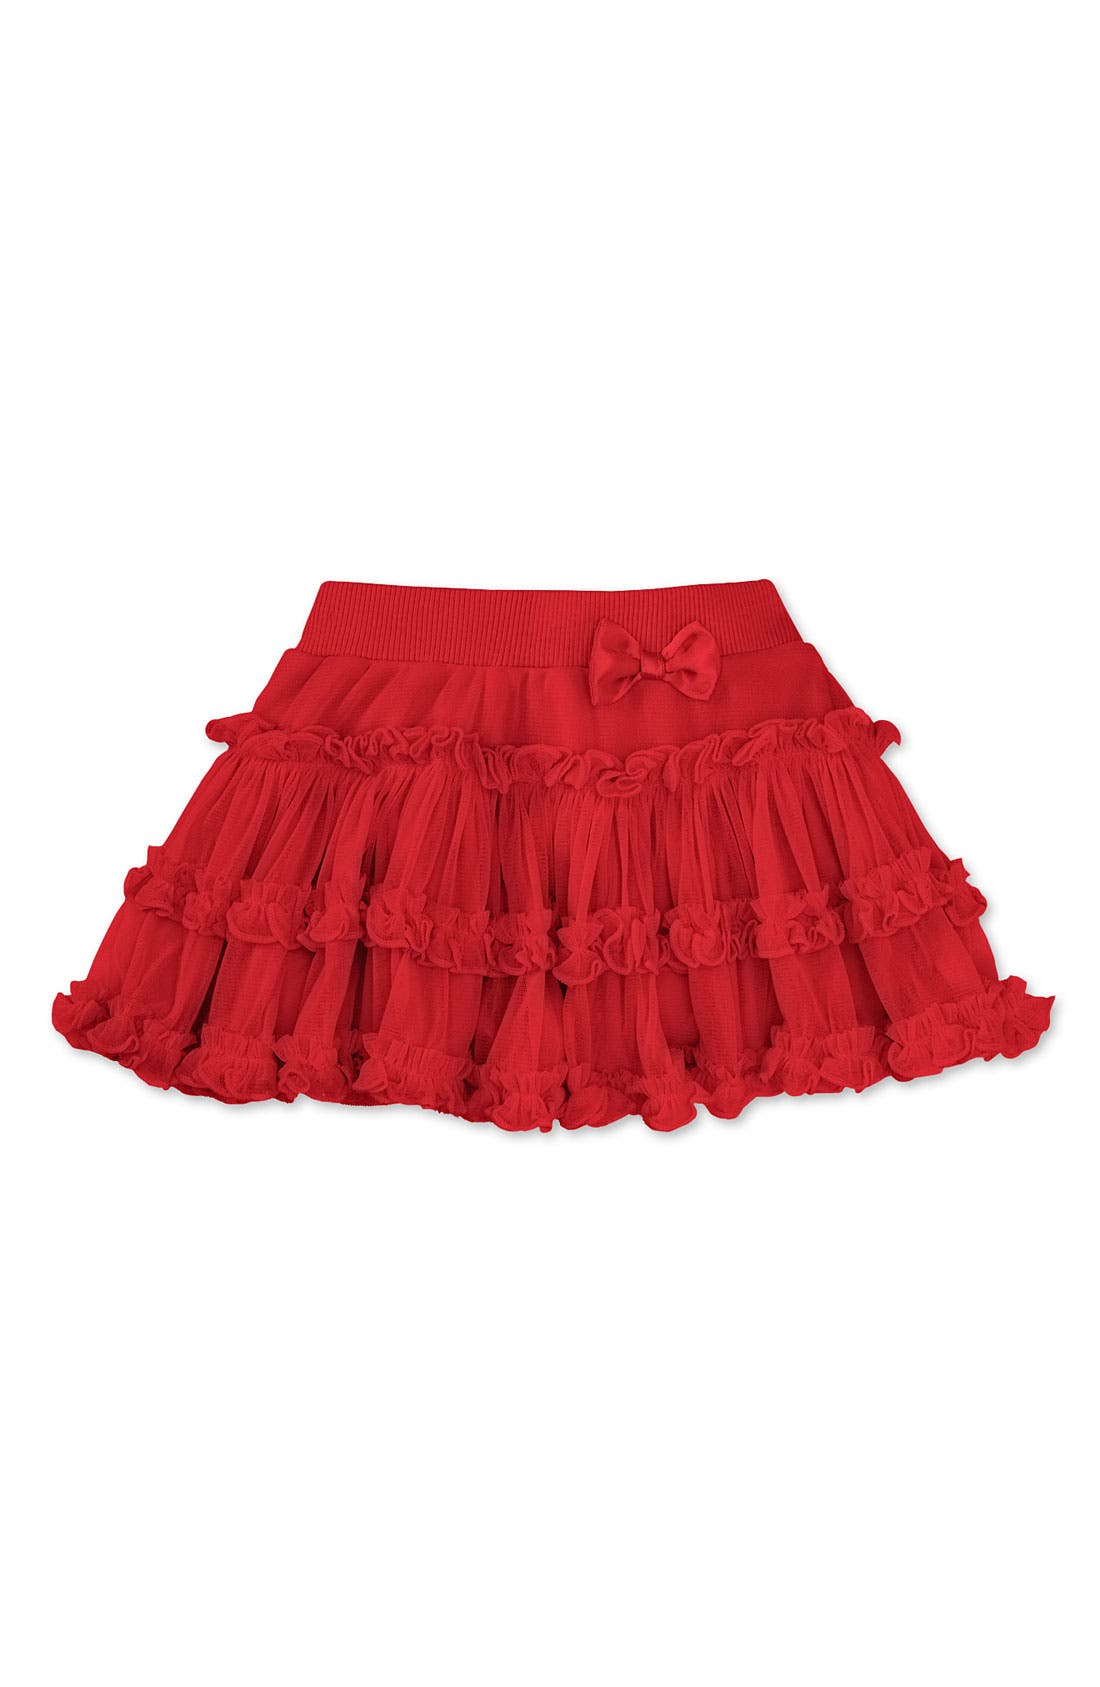 Main Image - Sweet Ivy Tutu Skirt (Infant)